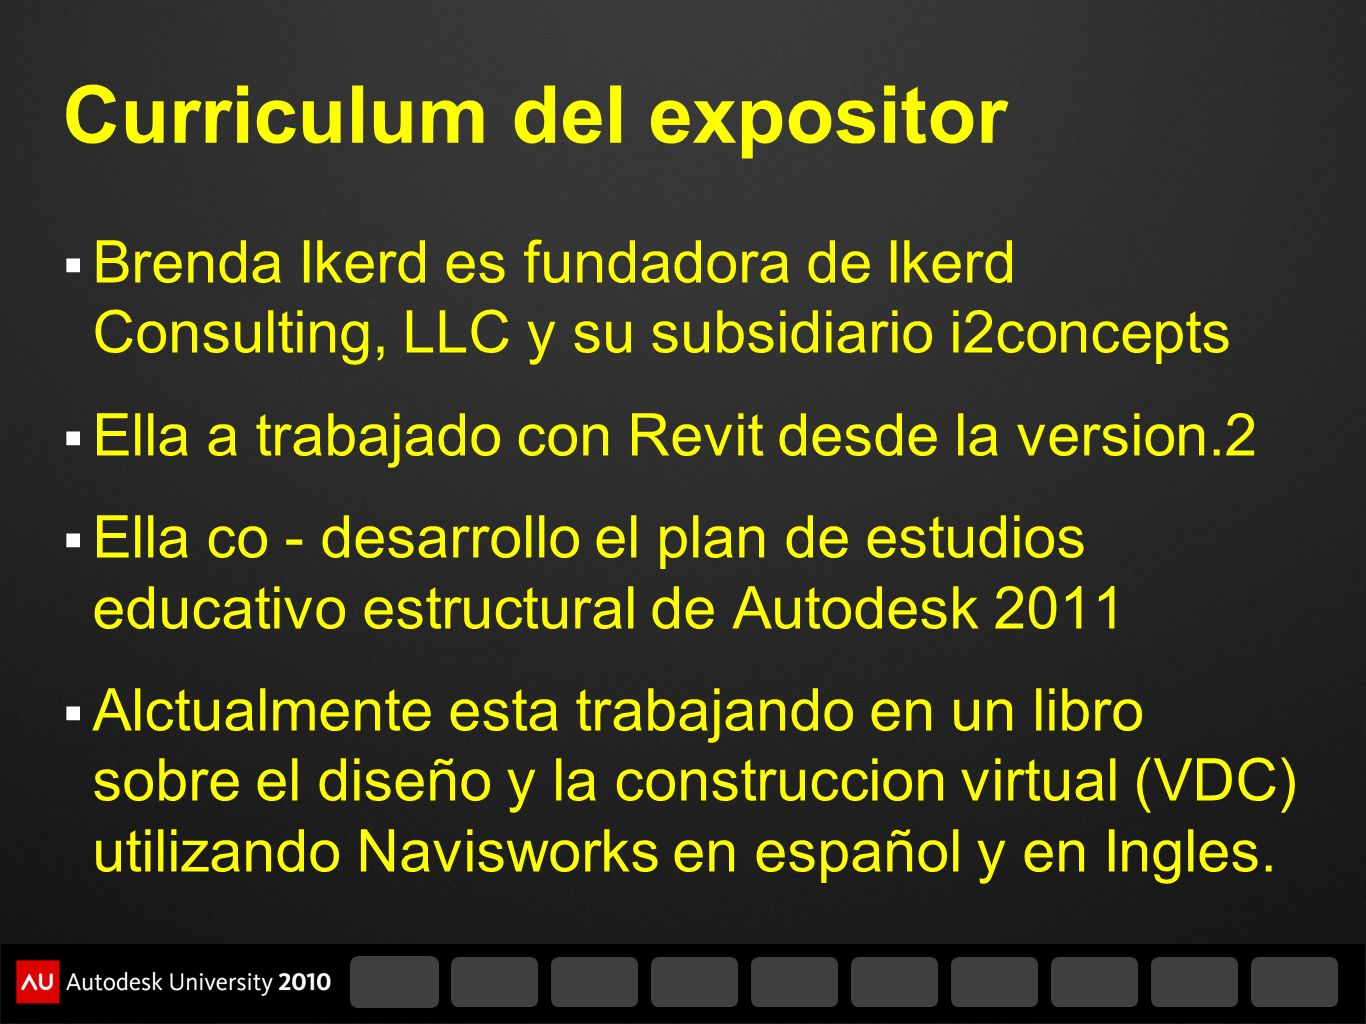 Curriculum del expositor